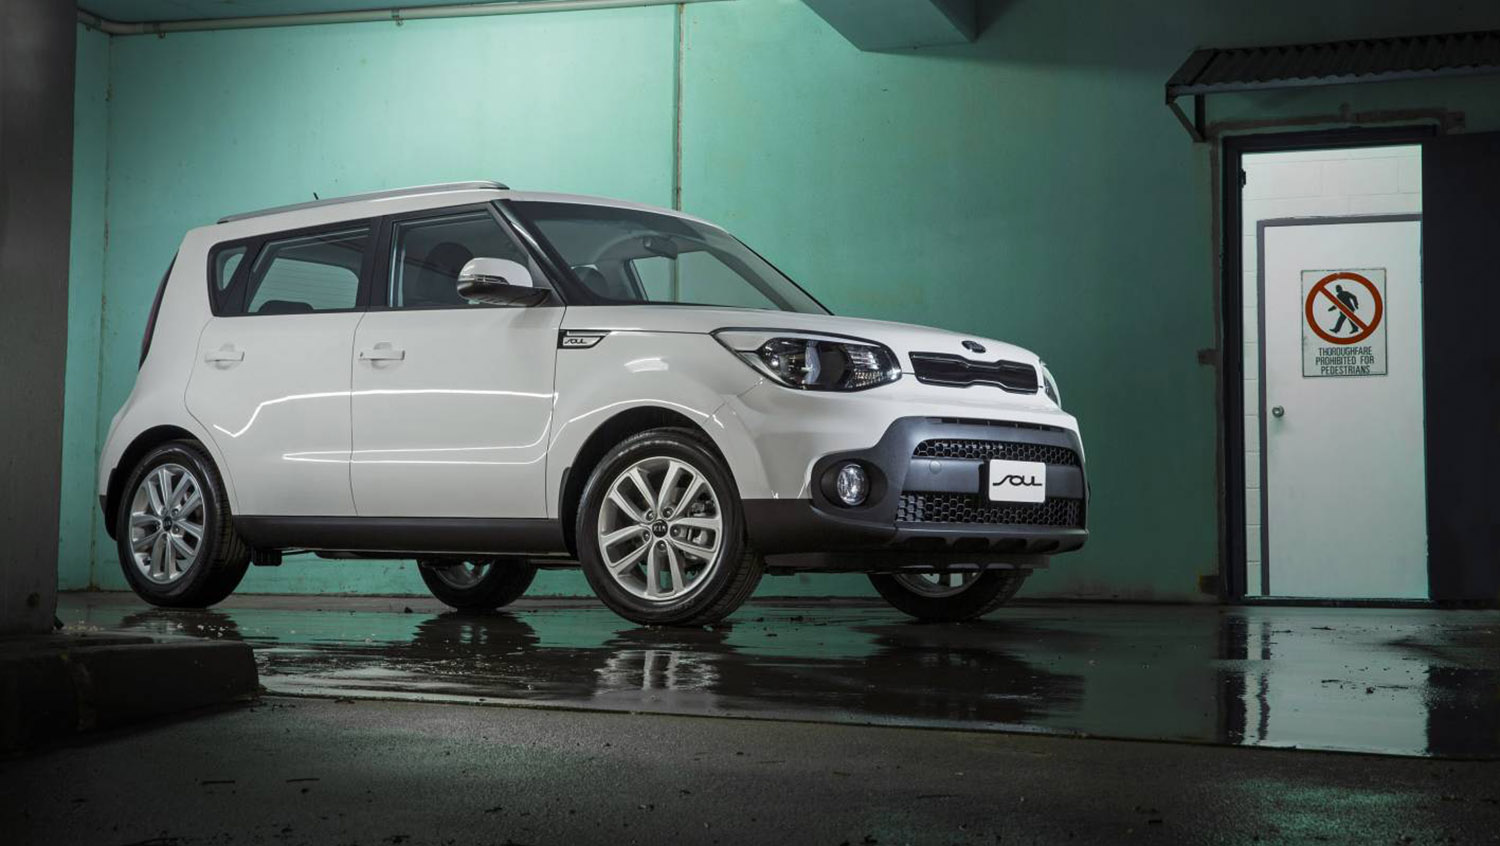 2017 kia soul pricing and specs 24 990 drive away price for refreshed hatch